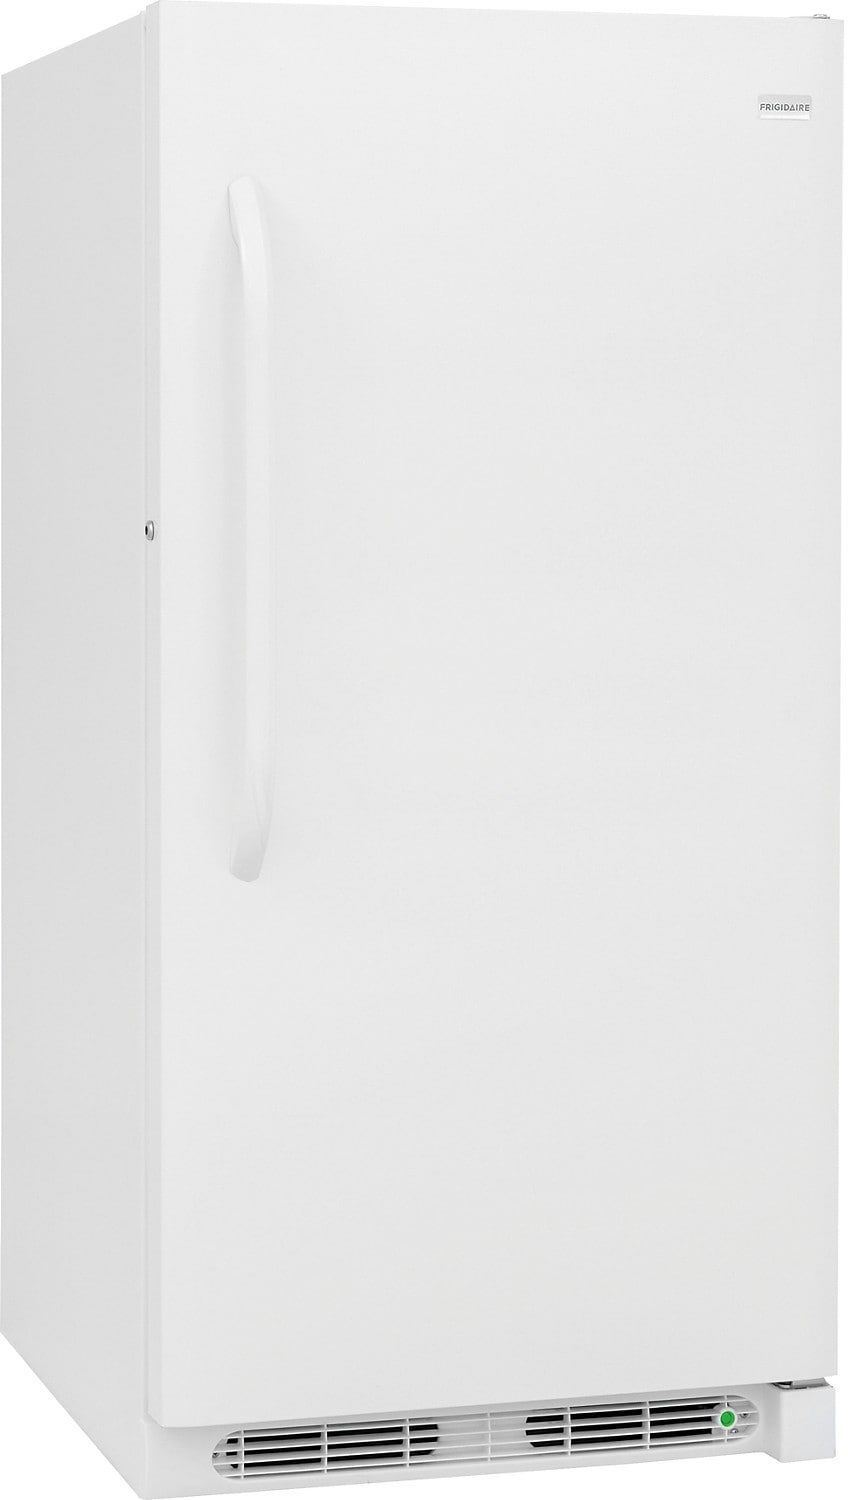 Frigidaire 14.4 Cu. Ft. Upright Freezer - White